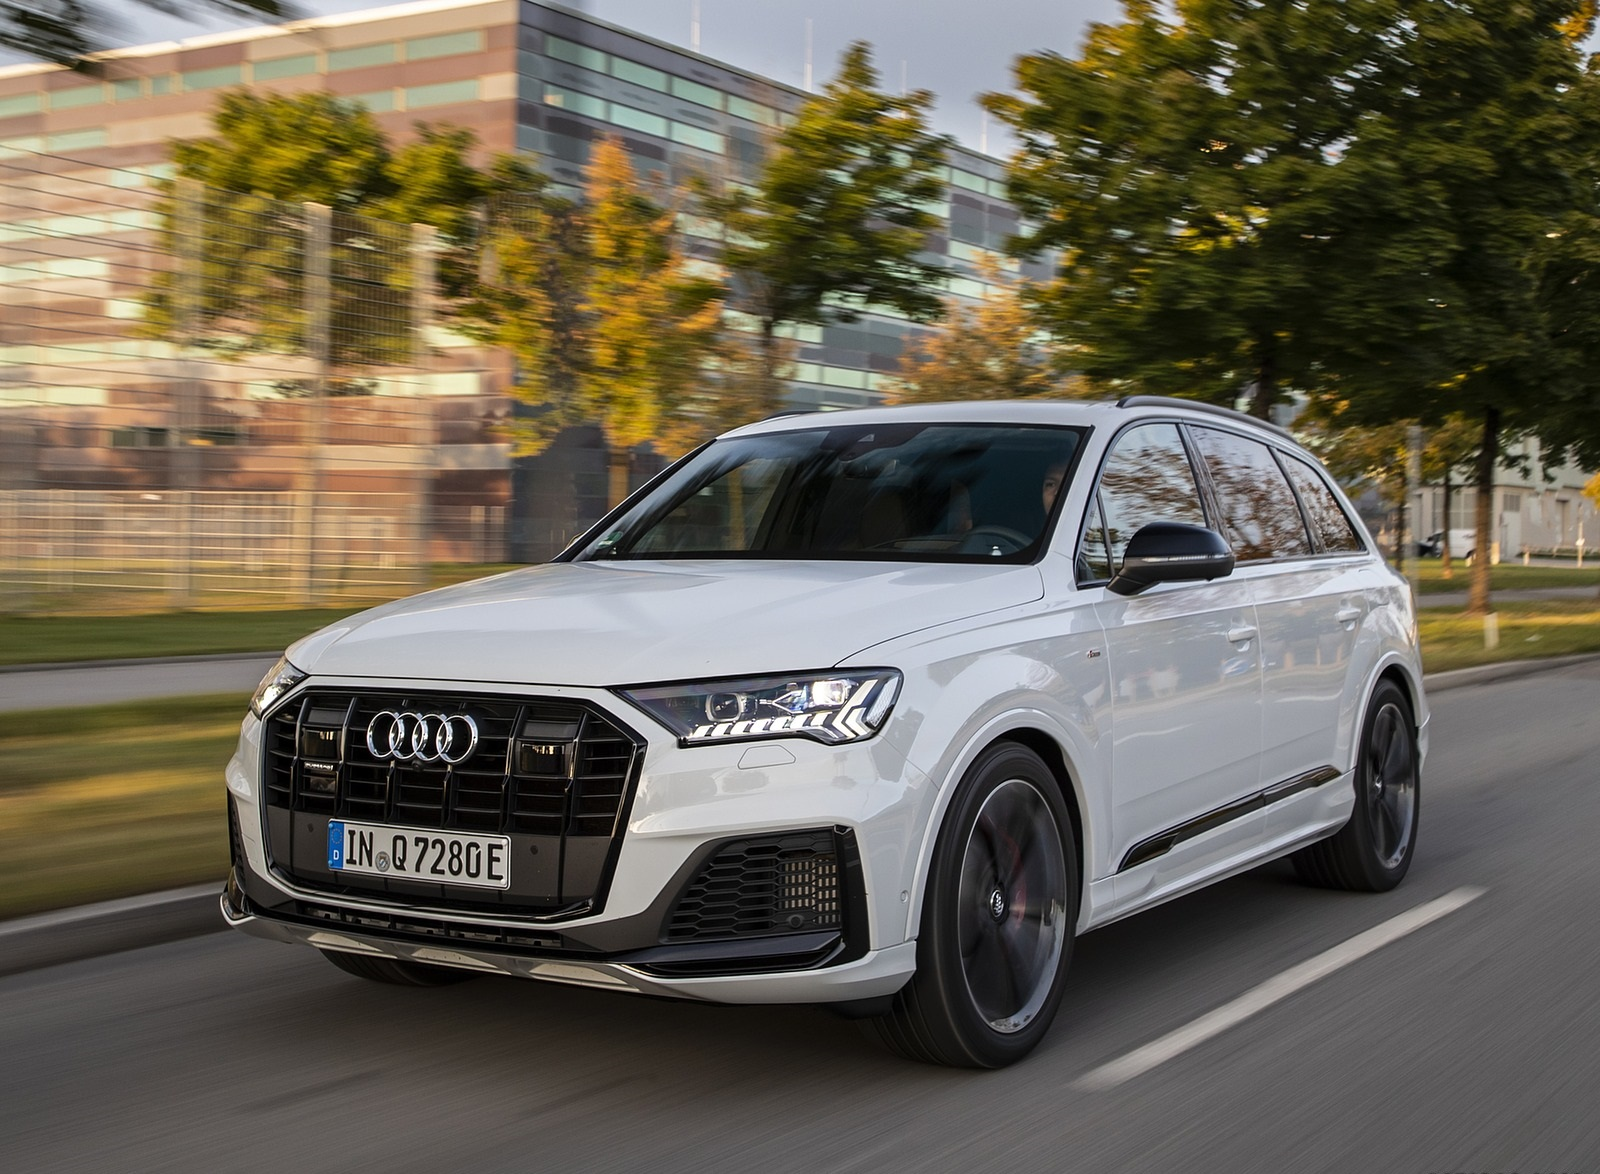 2020 Audi Q7 TFSI e quattro Plug-In Hybrid (Color: Glacier White) Front Three-Quarter Wallpapers (4)